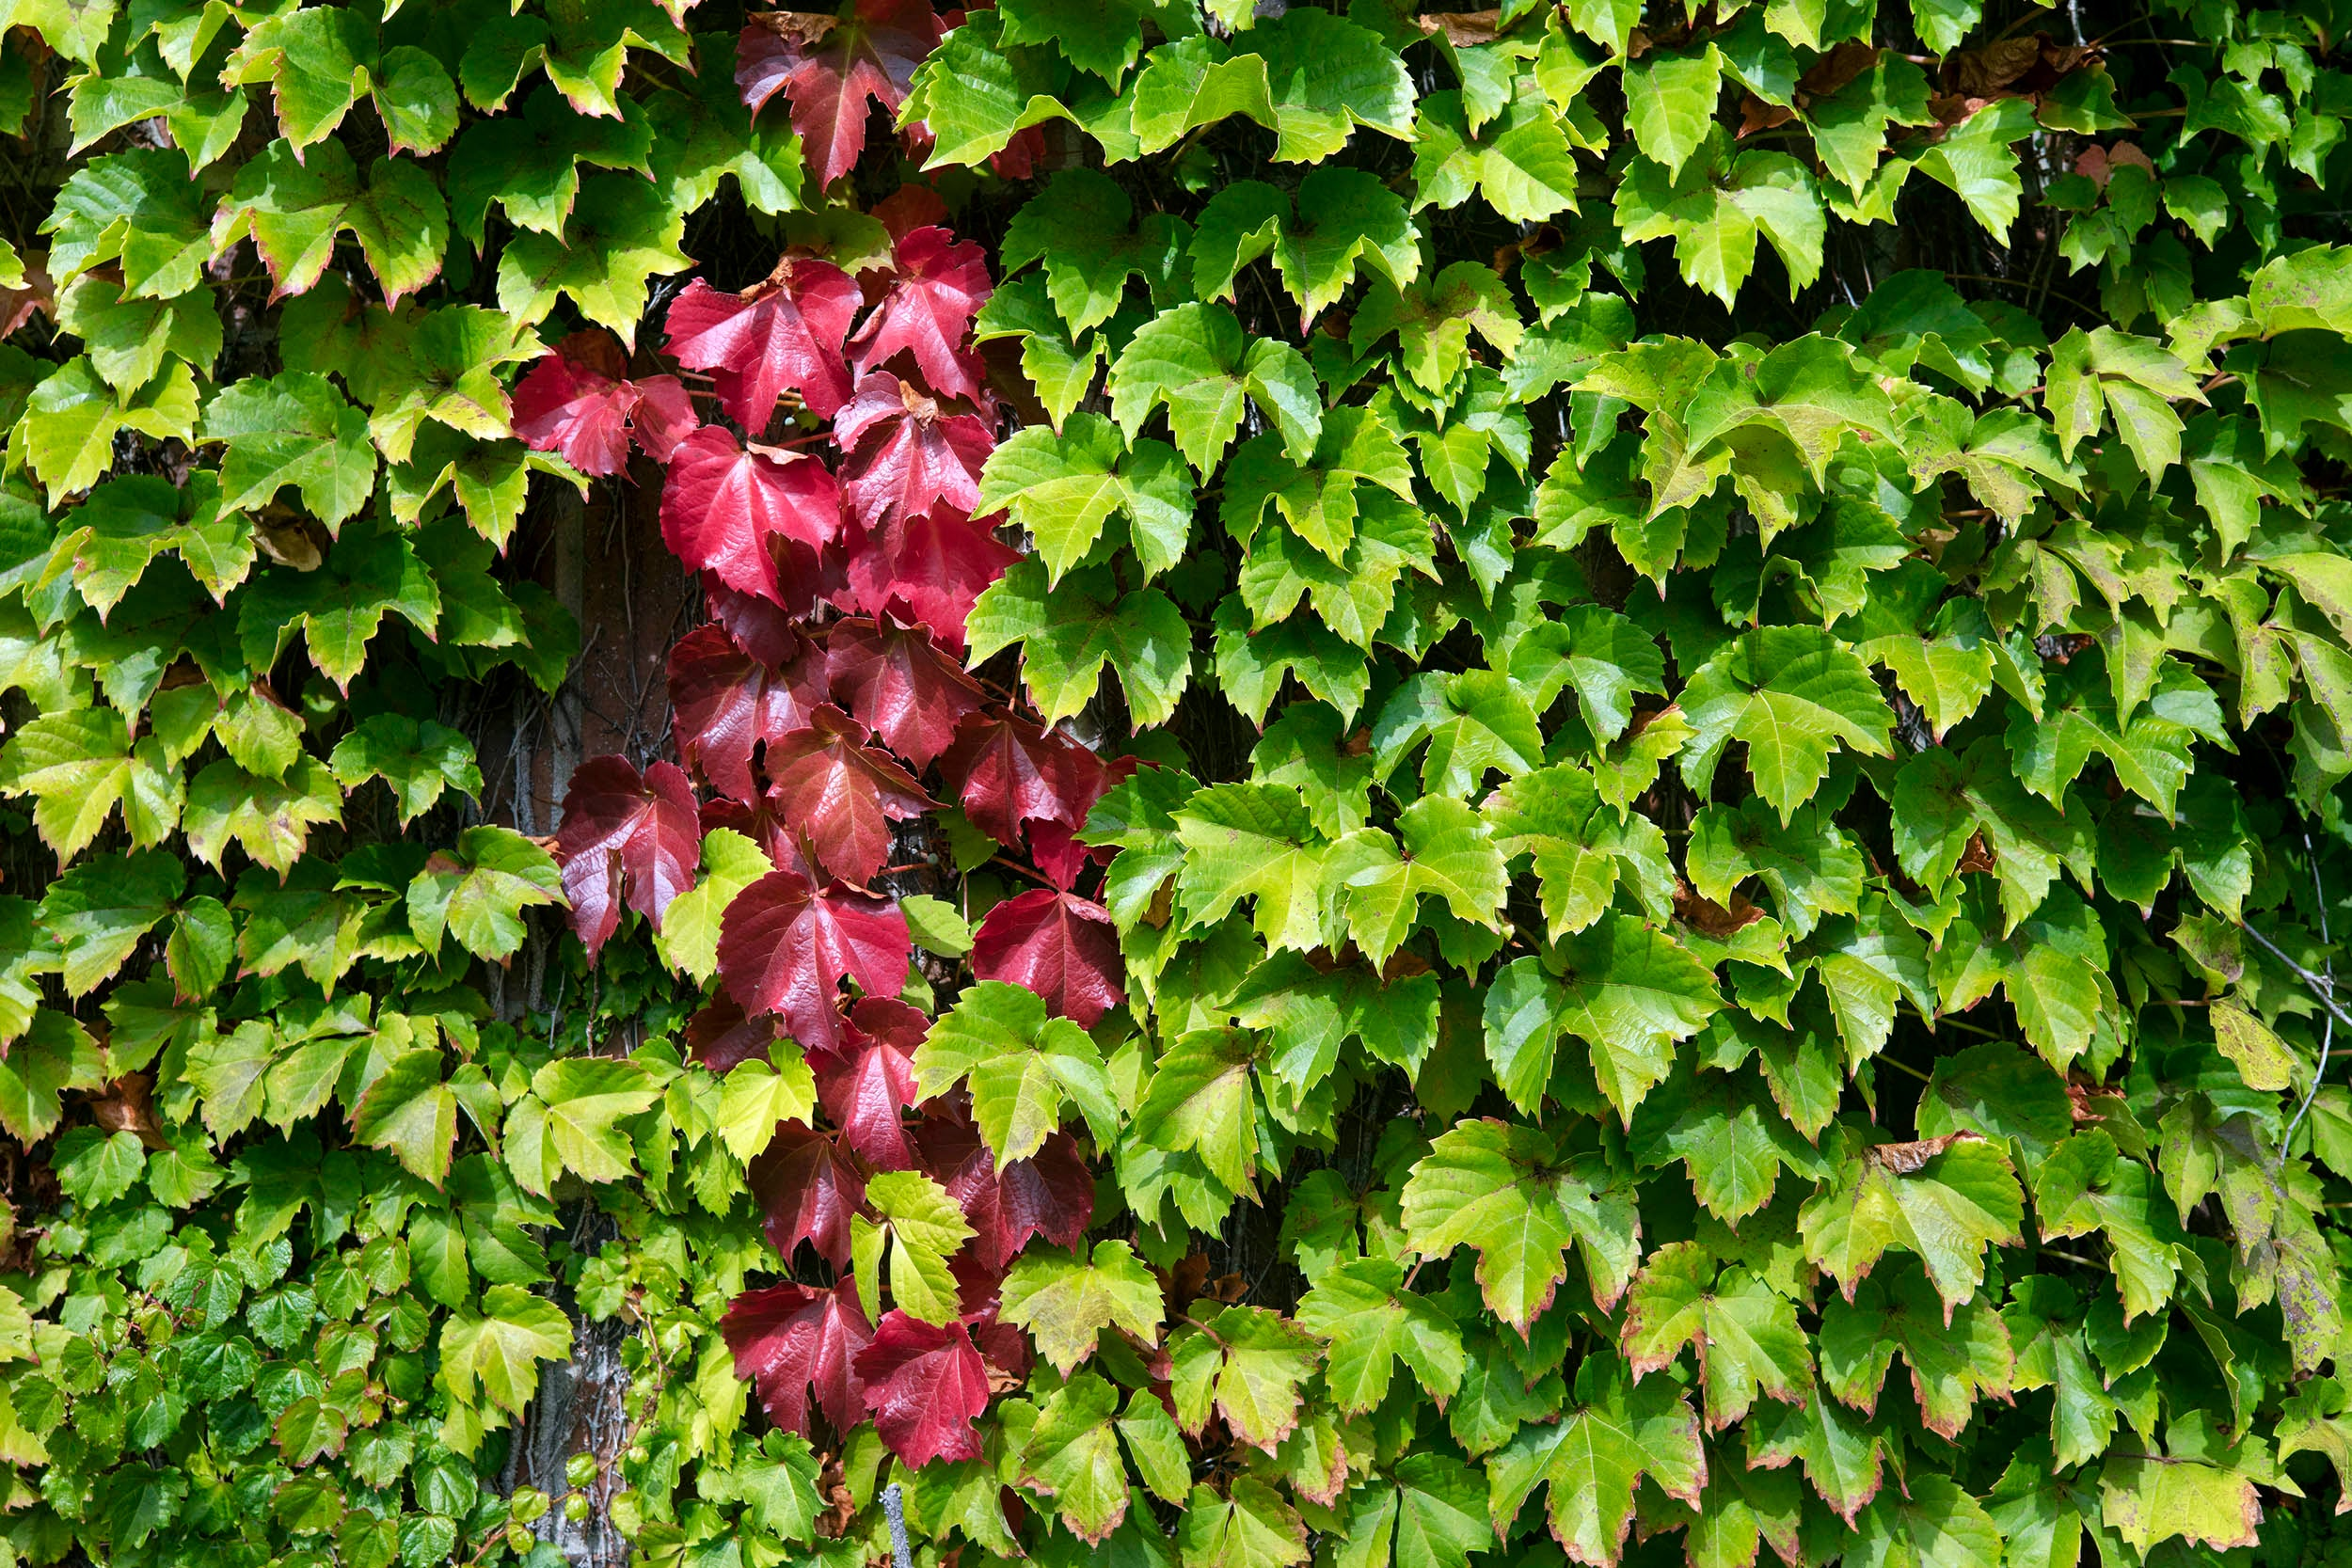 Ivy covers the wall of the Murr Center.